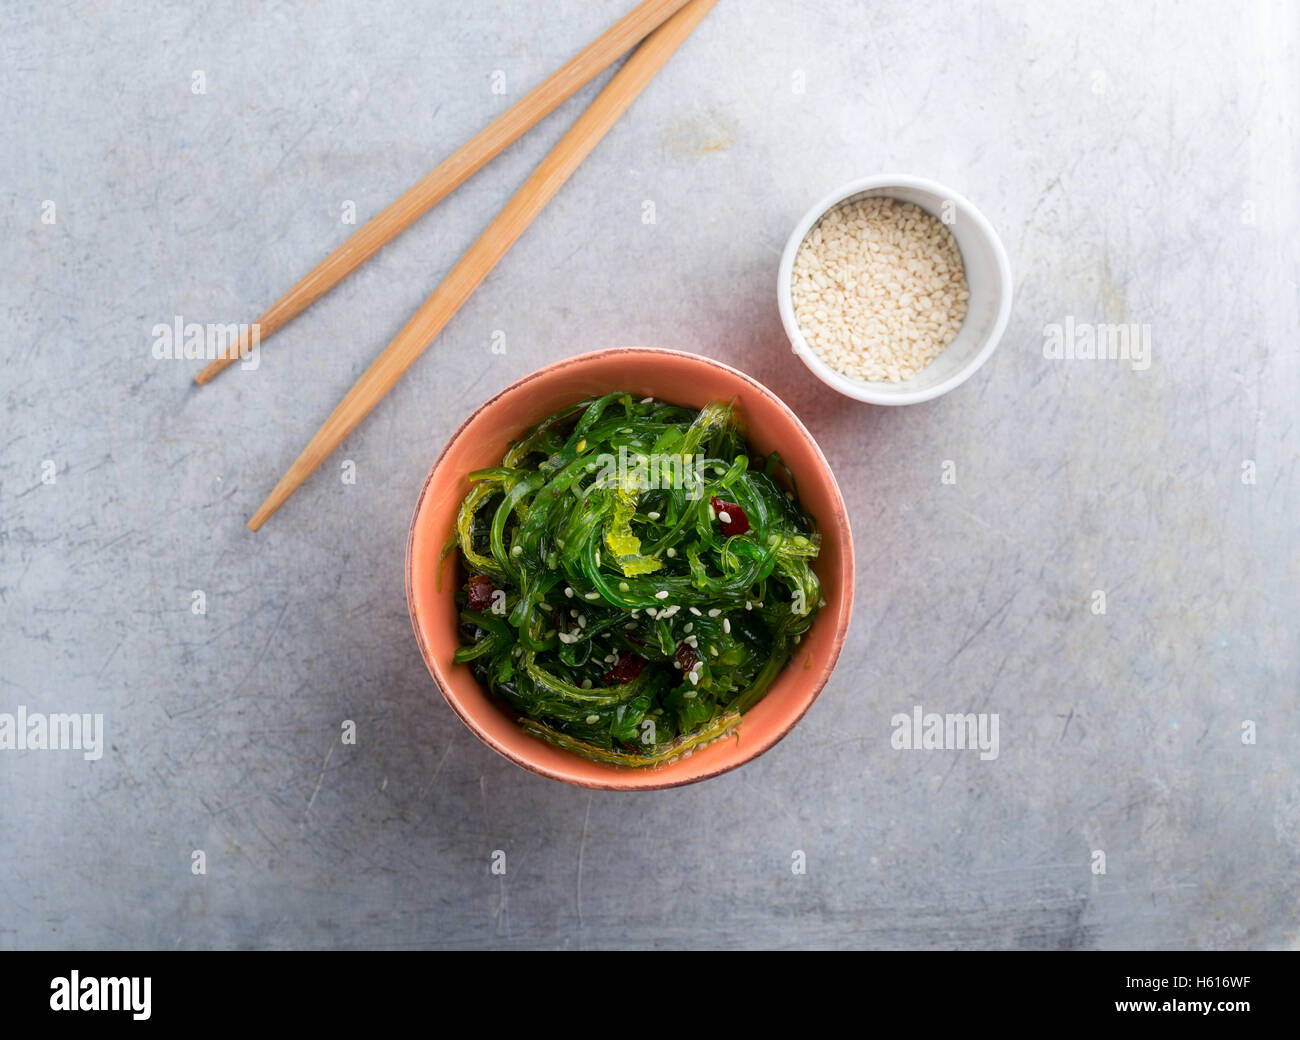 Wakame served with sesame seeds shot from above - Stock Image